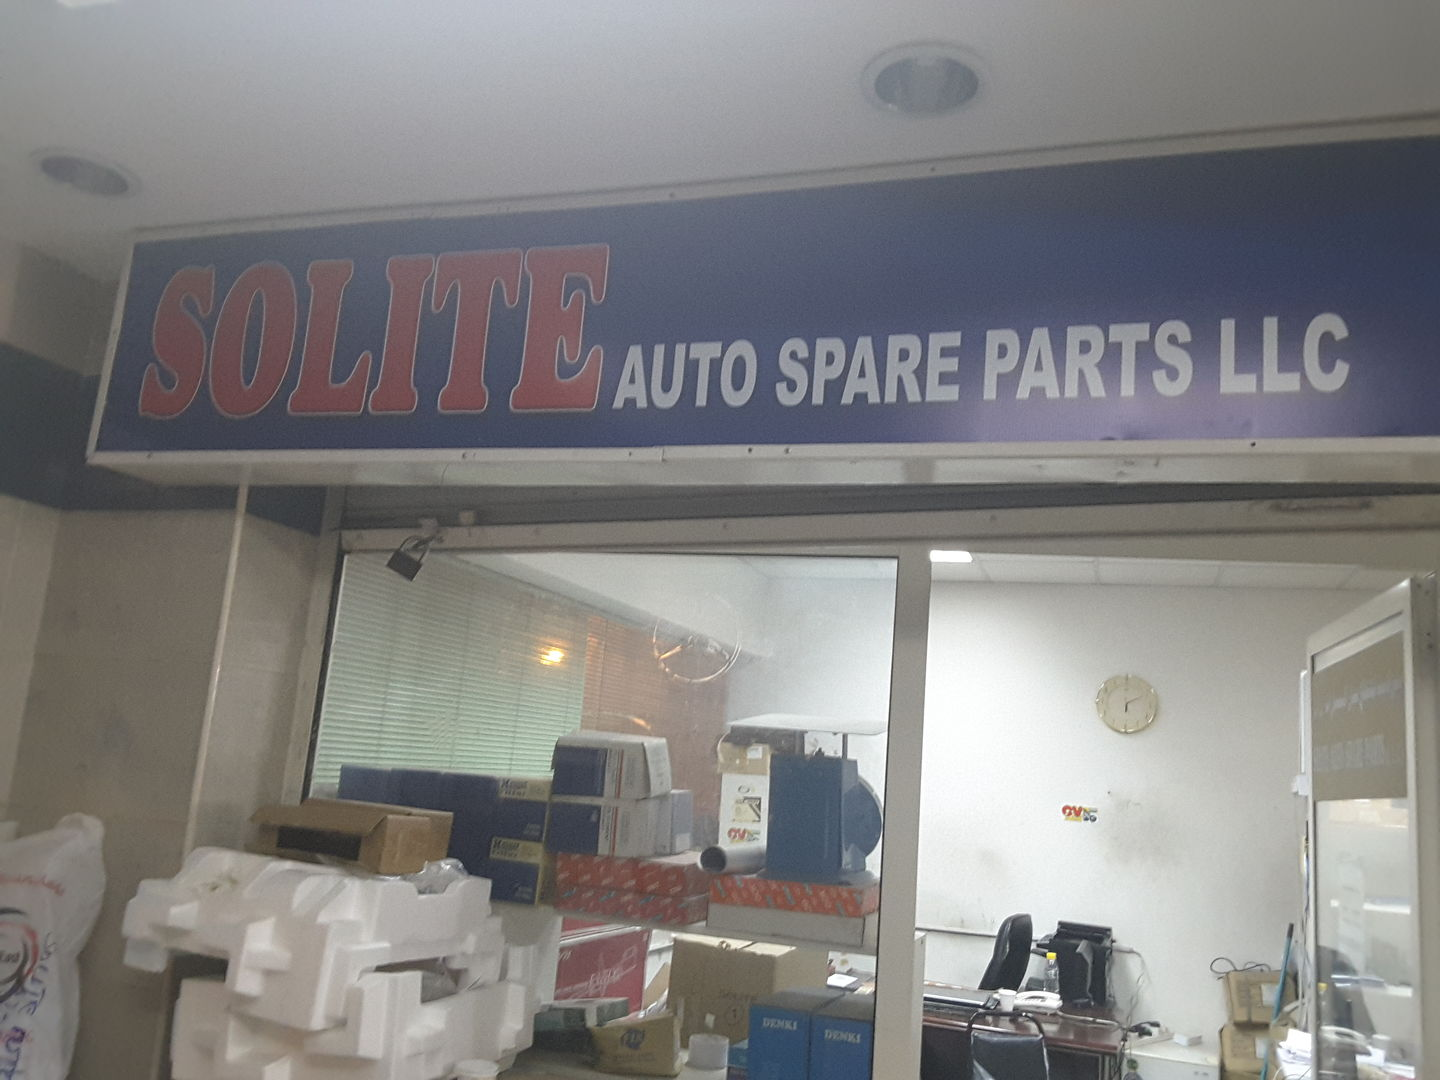 HiDubai-business-solite-auto-spare-parts-b2b-services-distributors-wholesalers-naif-dubai